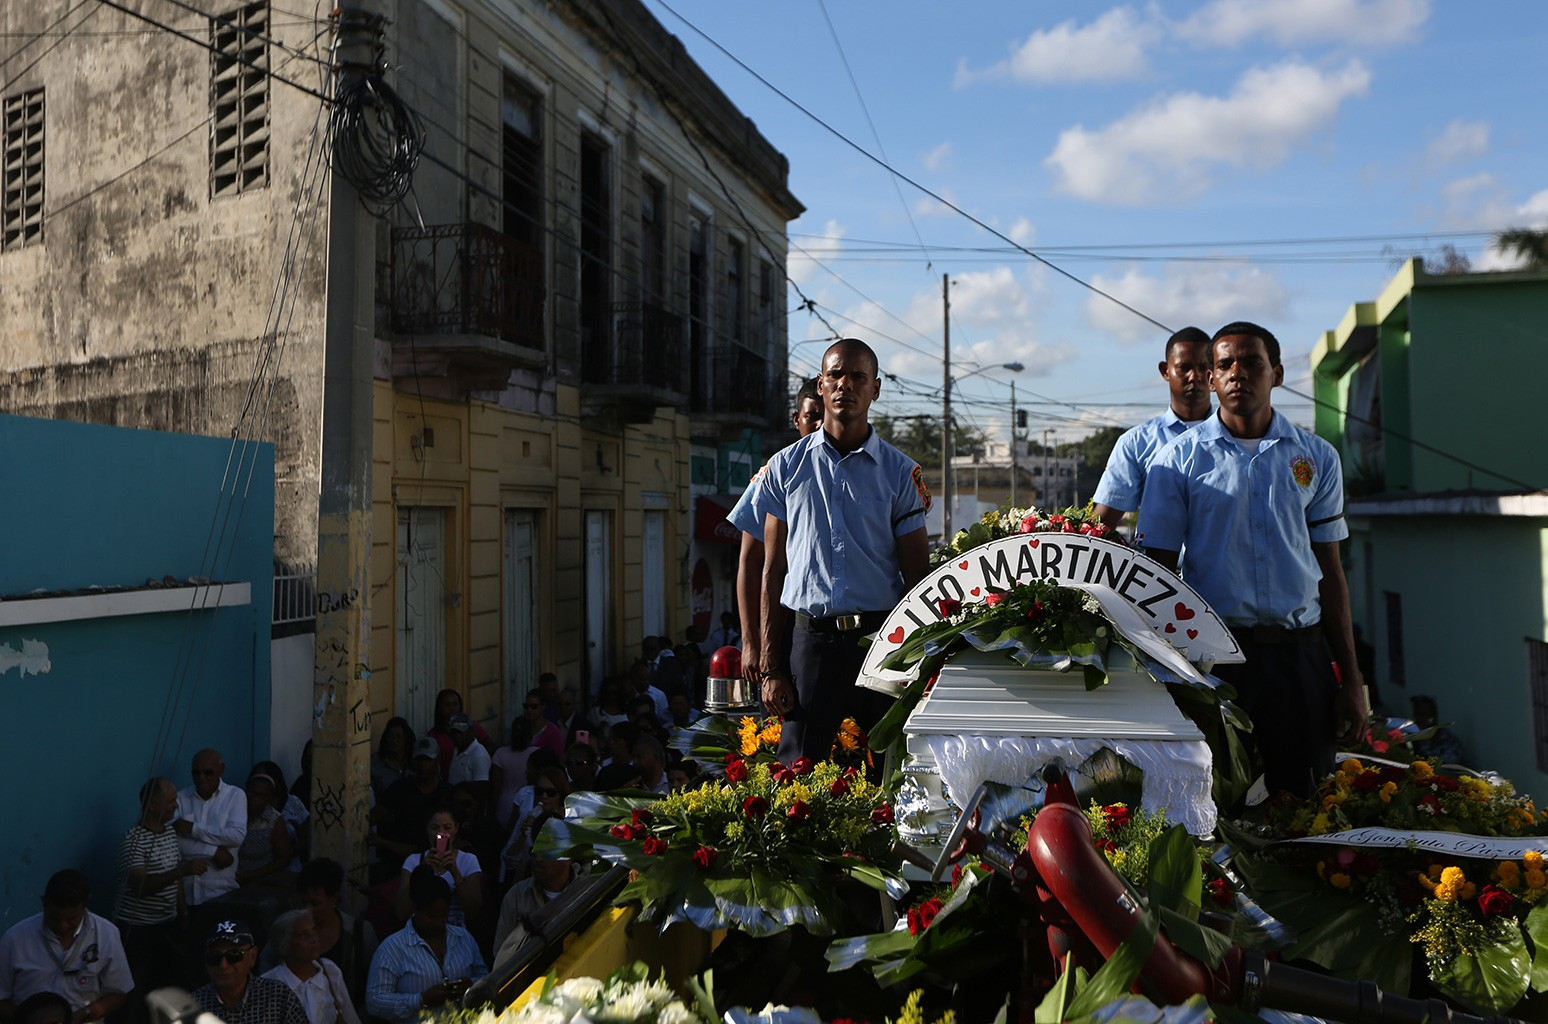 Martinez was assassinated along with his colleague Luis Manuel Medina. Two journalists were killed during a live radio broadcast by unknown gunmen.